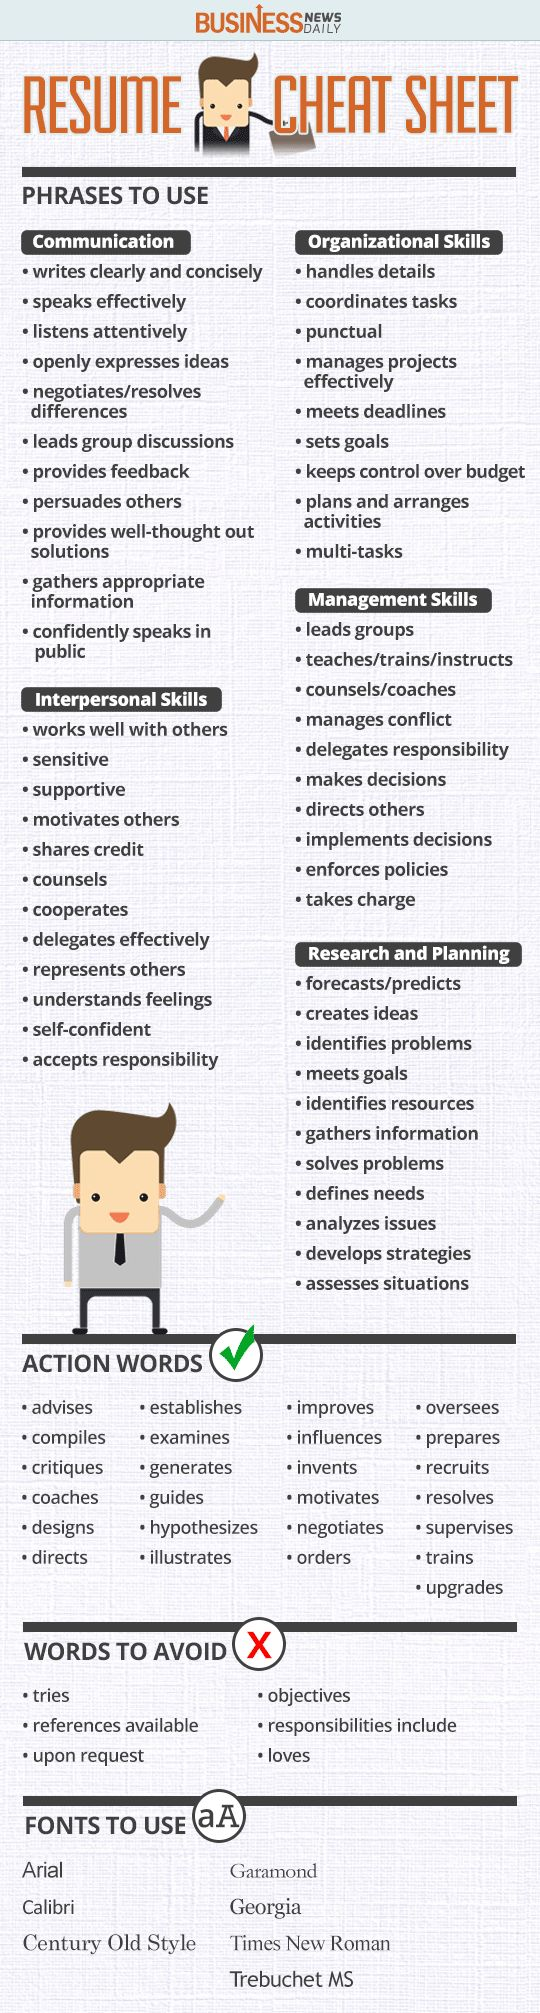 Opposenewapstandardsus  Unusual  Ideas About Resume On Pinterest  Cv Format Resume Cv And  With Fetching Resume Cheat Sheet Infographic Andrews Almost Done With A Complete Unit On Employment Which With Archaic Assembly Line Resume Also Example Summary For Resume In Addition Portfolio Resume And Law Enforcement Resume Template As Well As Bank Teller Job Description For Resume Additionally Resume Templates Pages From Pinterestcom With Opposenewapstandardsus  Fetching  Ideas About Resume On Pinterest  Cv Format Resume Cv And  With Archaic Resume Cheat Sheet Infographic Andrews Almost Done With A Complete Unit On Employment Which And Unusual Assembly Line Resume Also Example Summary For Resume In Addition Portfolio Resume From Pinterestcom